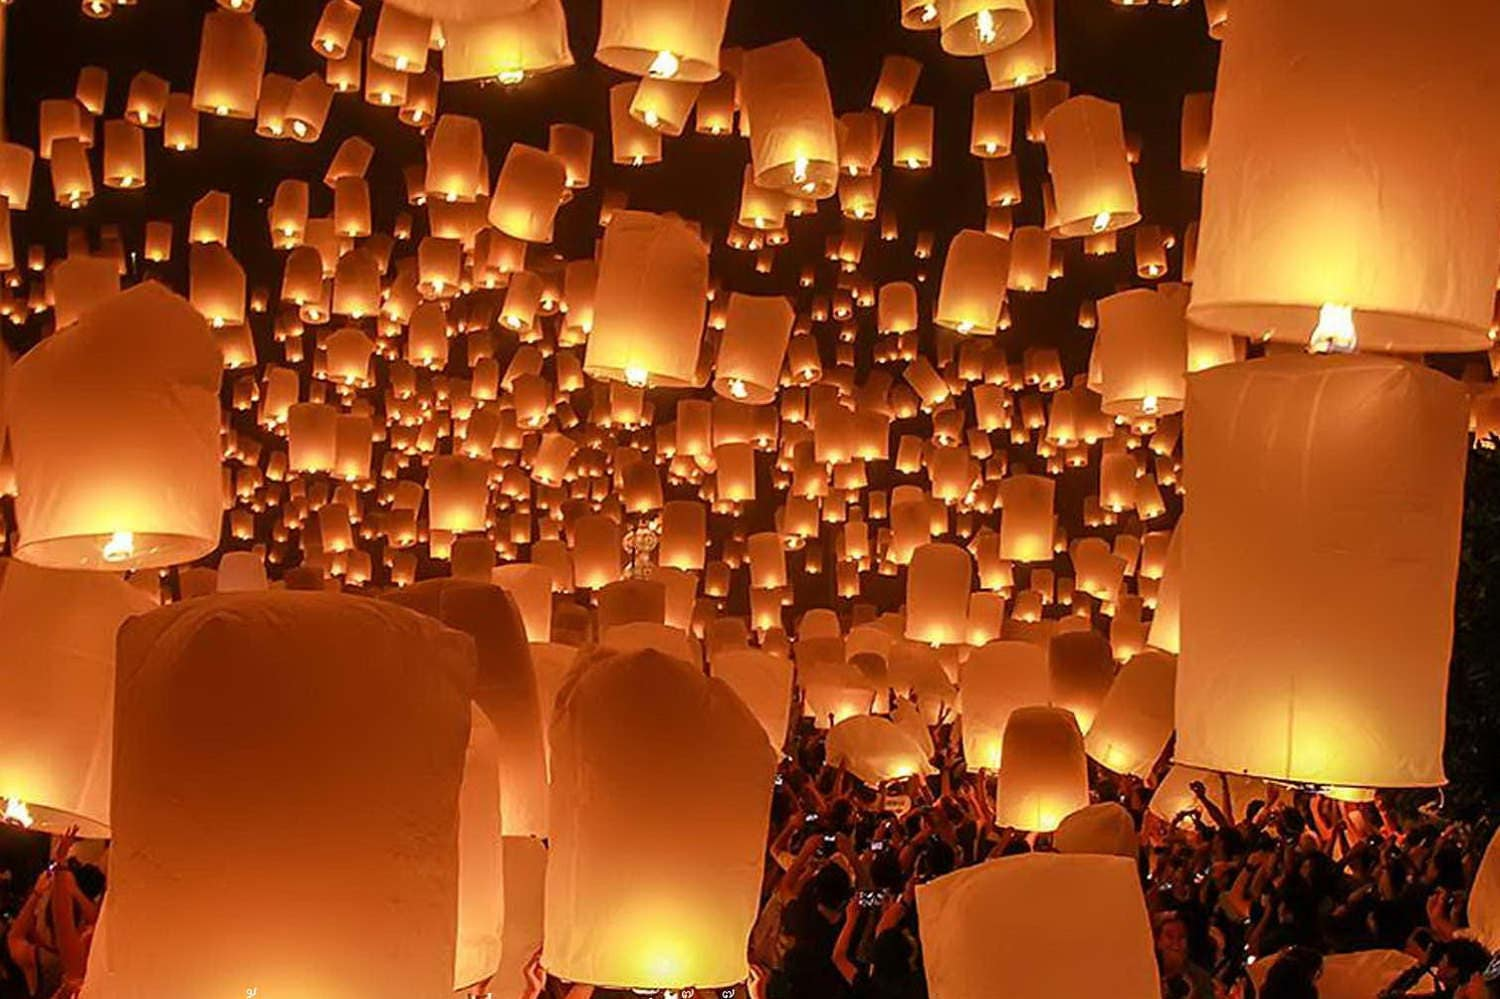 HOT BUY 2 Get 1 FREE Colorful Big Thai Floating Lantern Sky for Flying Lantern Lights  284dqh